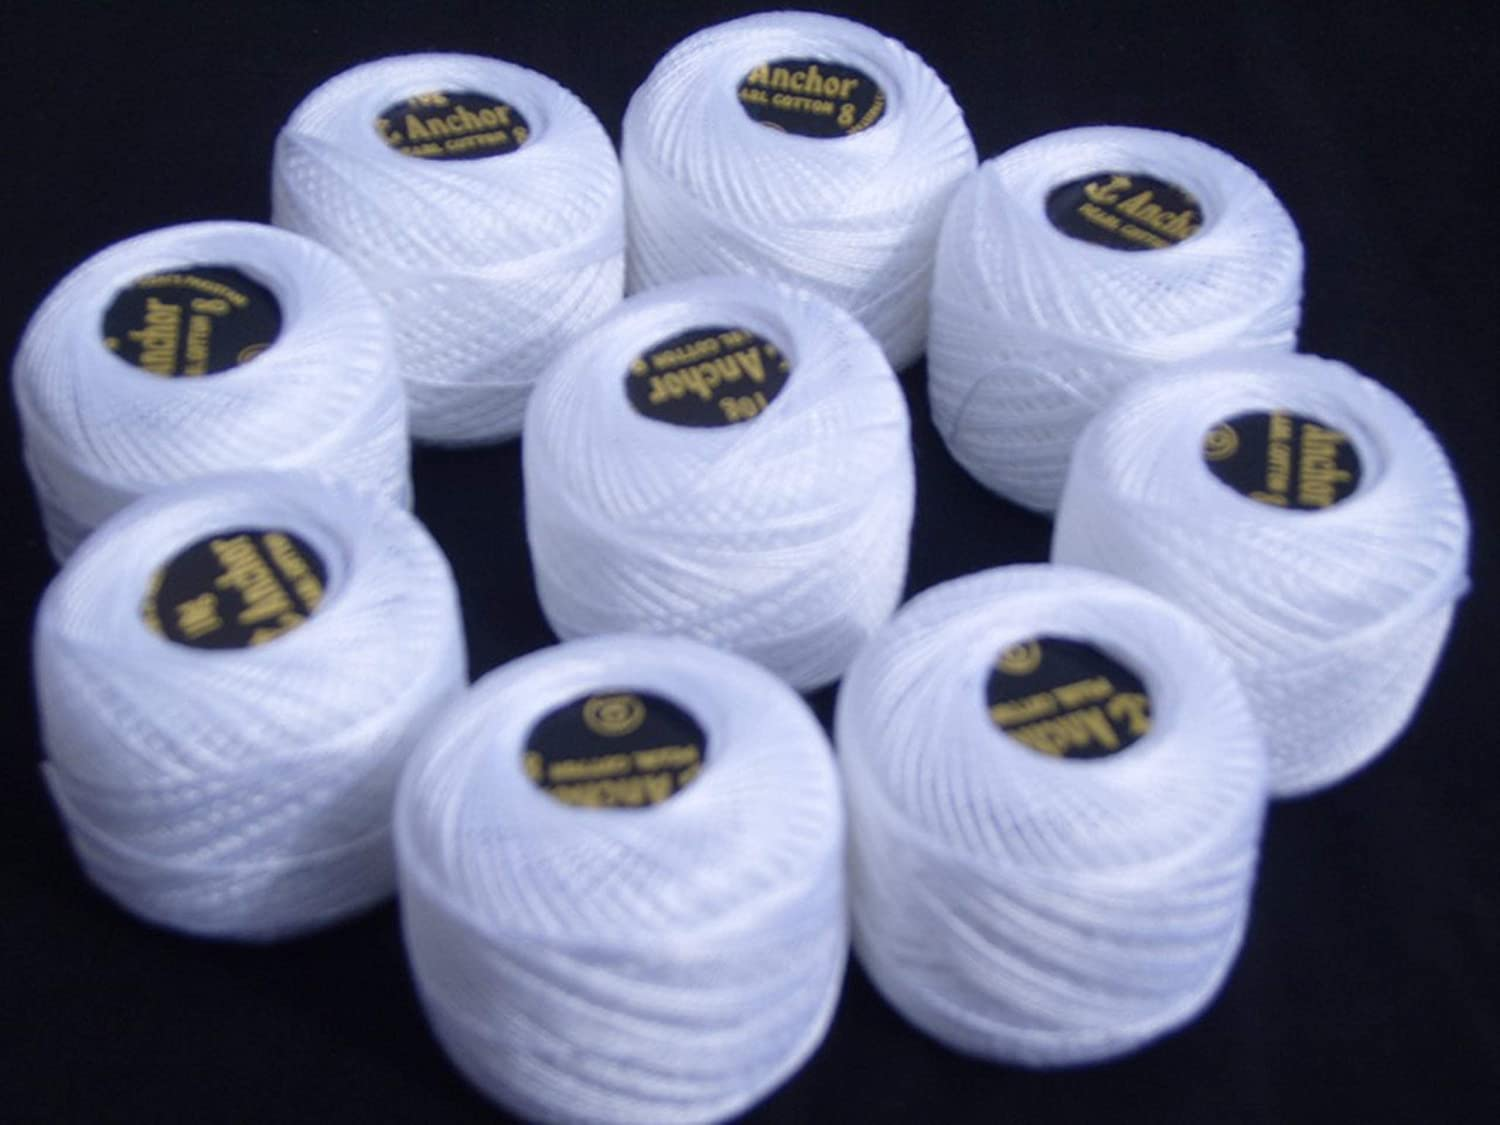 WHITE Size 8 10 ANCHOR Pearl Cotton Balls. 85 Meters each by GCS London